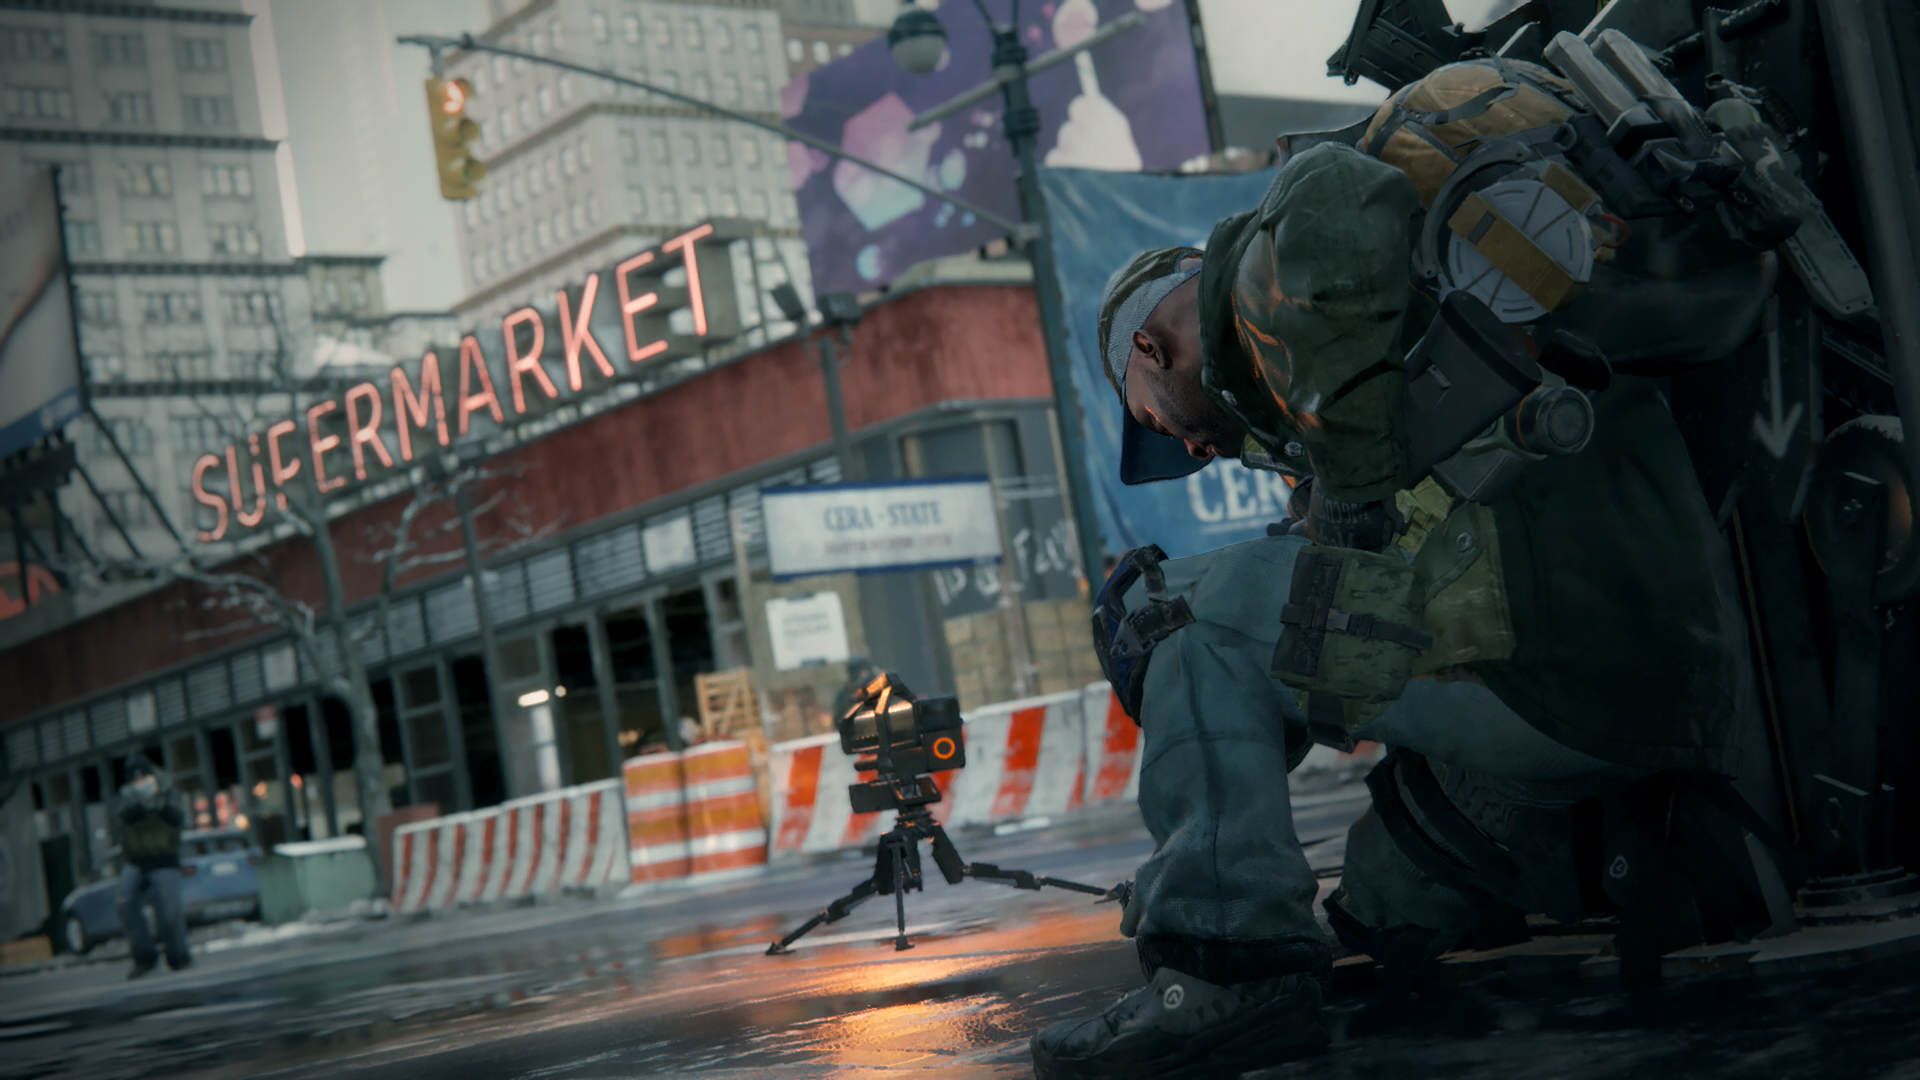 Ubisoft Confirm The Division Wont Have Microtransactions 2917756 tctd screen turret e3 150615 4pm pt 1438694639